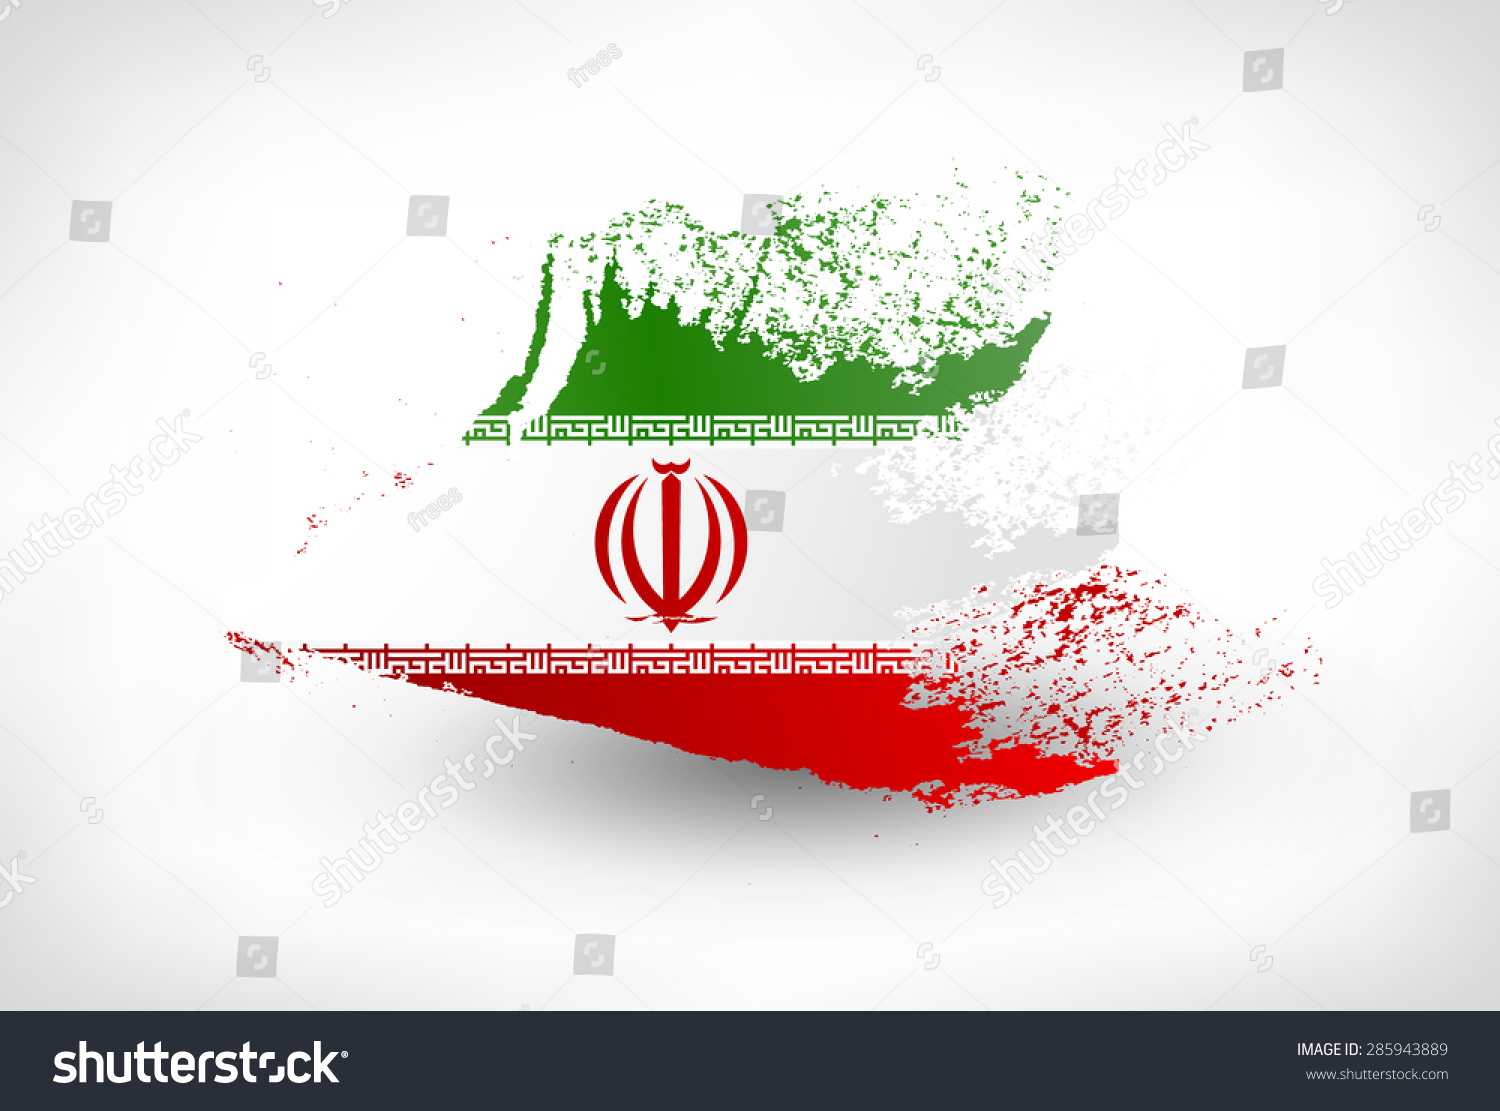 Brush painted flag iran hand drawn stock vector 285943889 brush painted flag of iran hand drawn style illustration with a grunge effect buycottarizona Choice Image